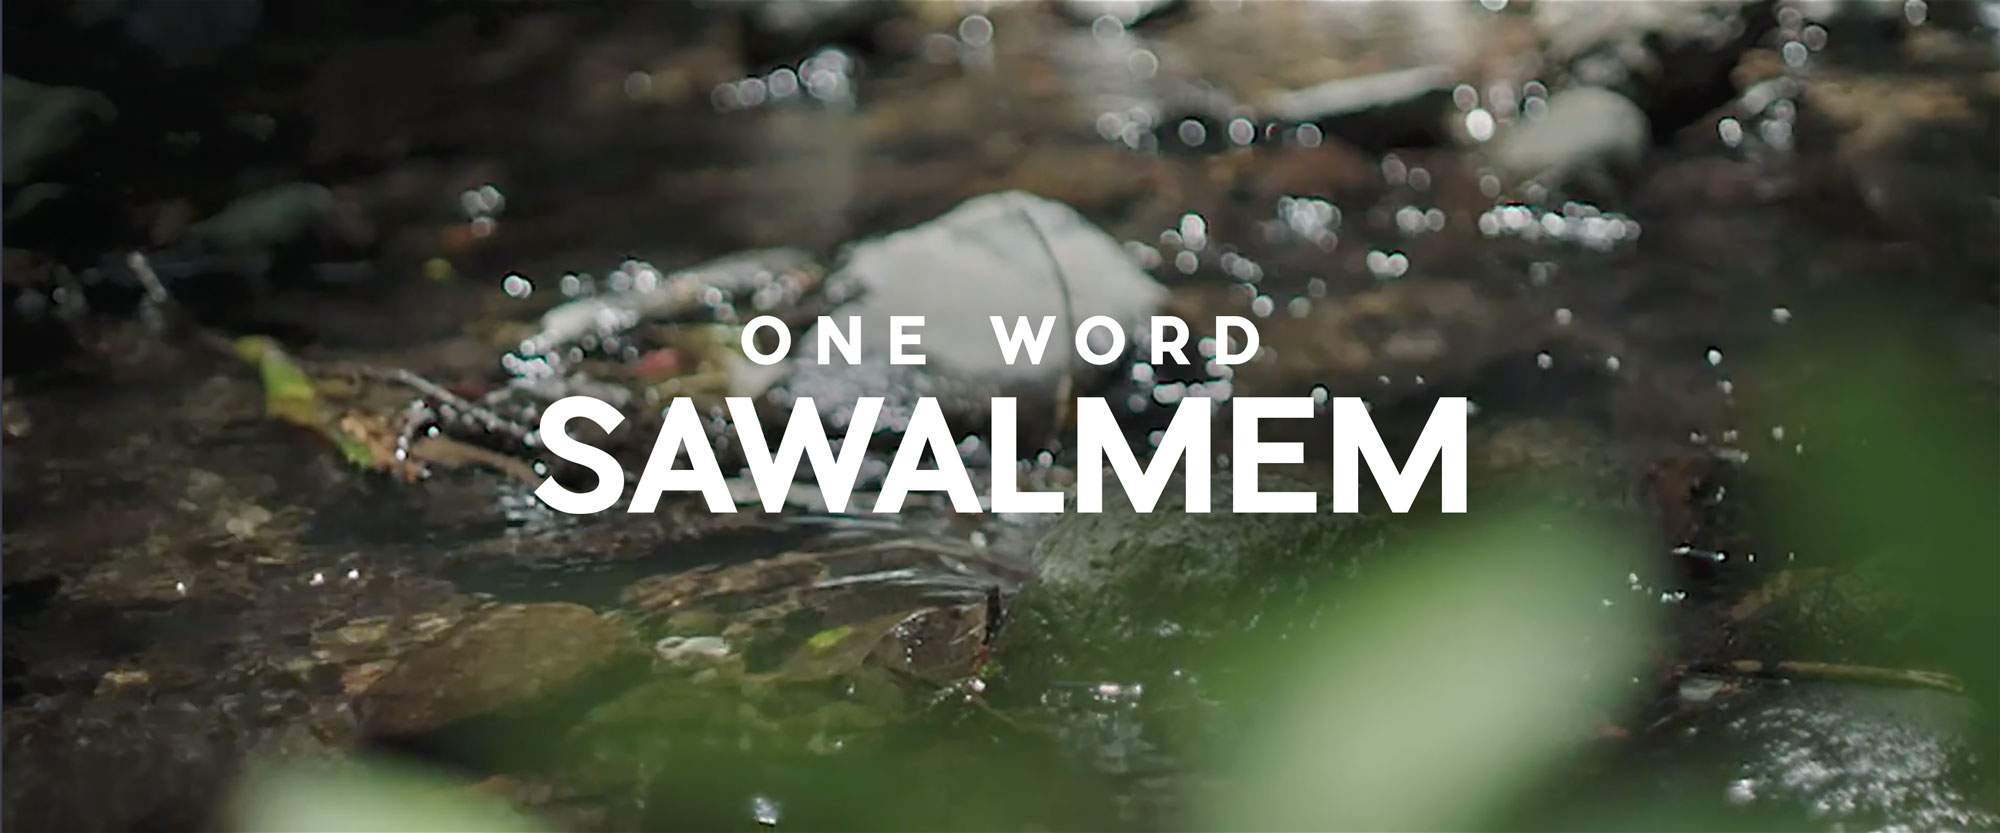 One Word Sawalmem Title Logotype